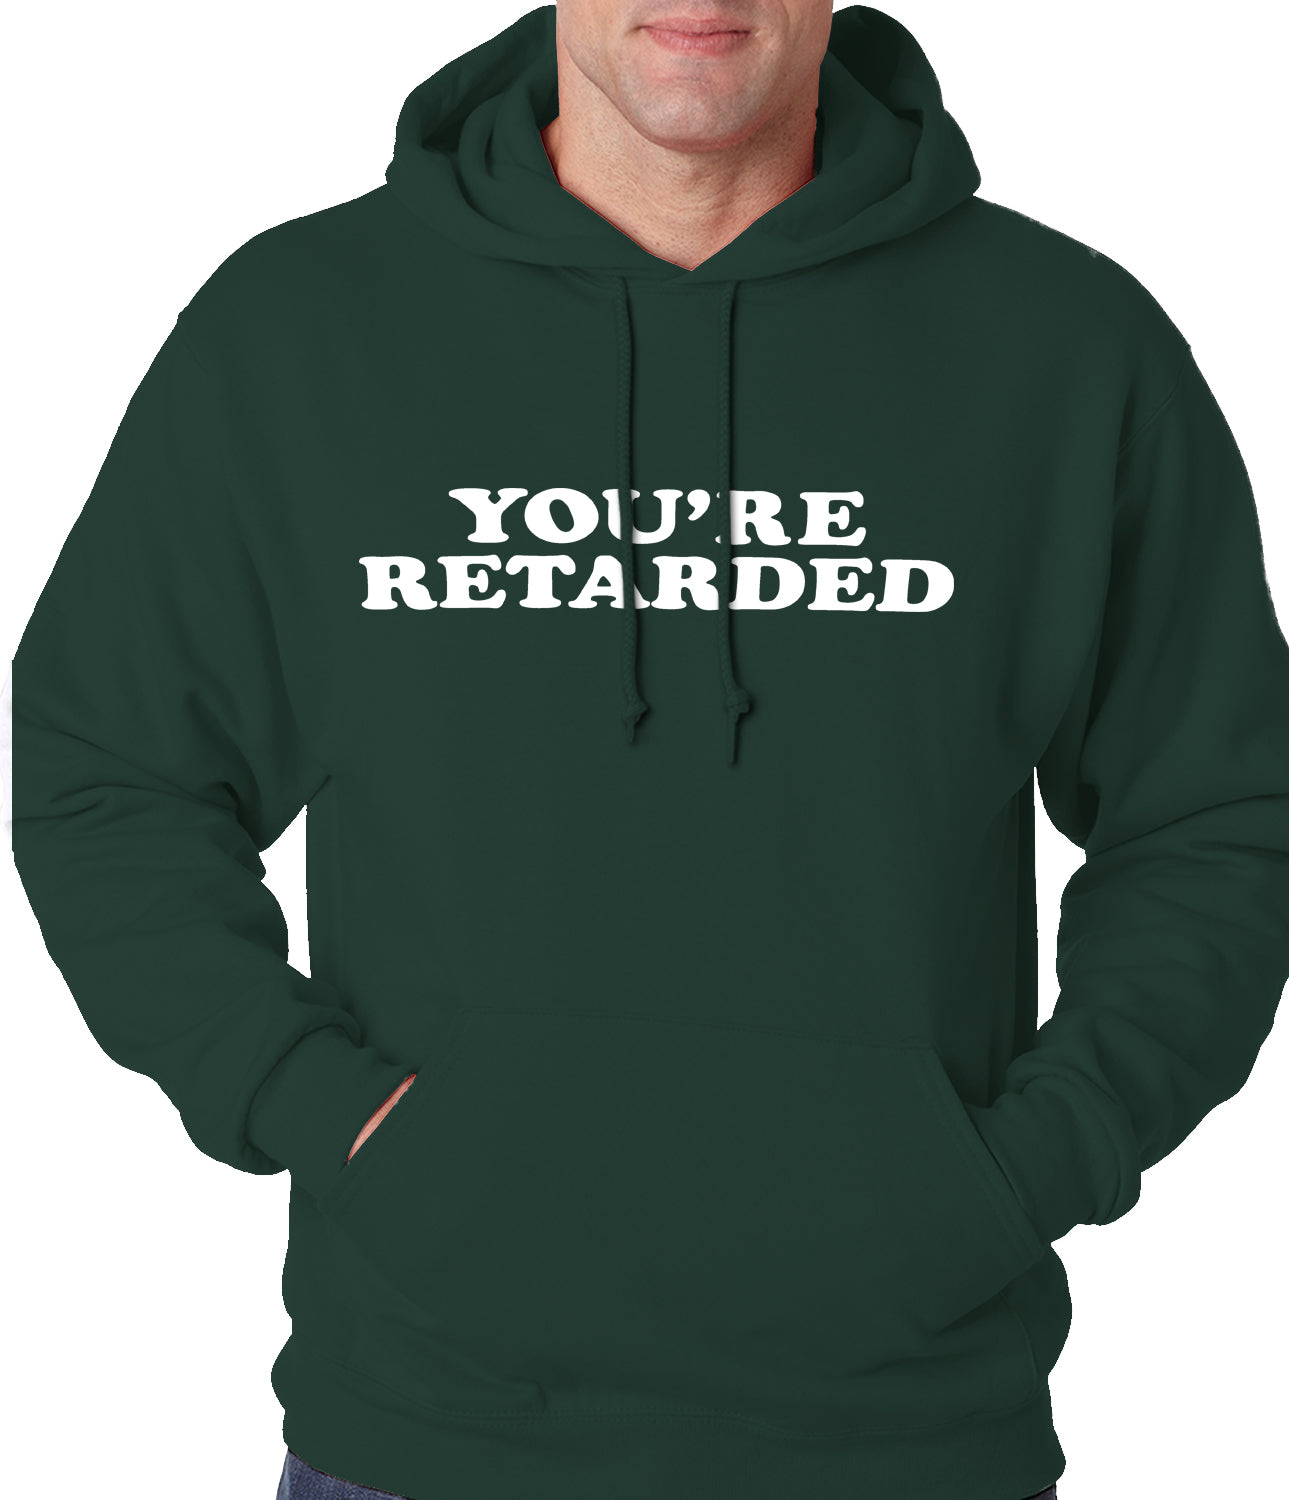 Funny You're Retarded Humorous Adult Hoodie